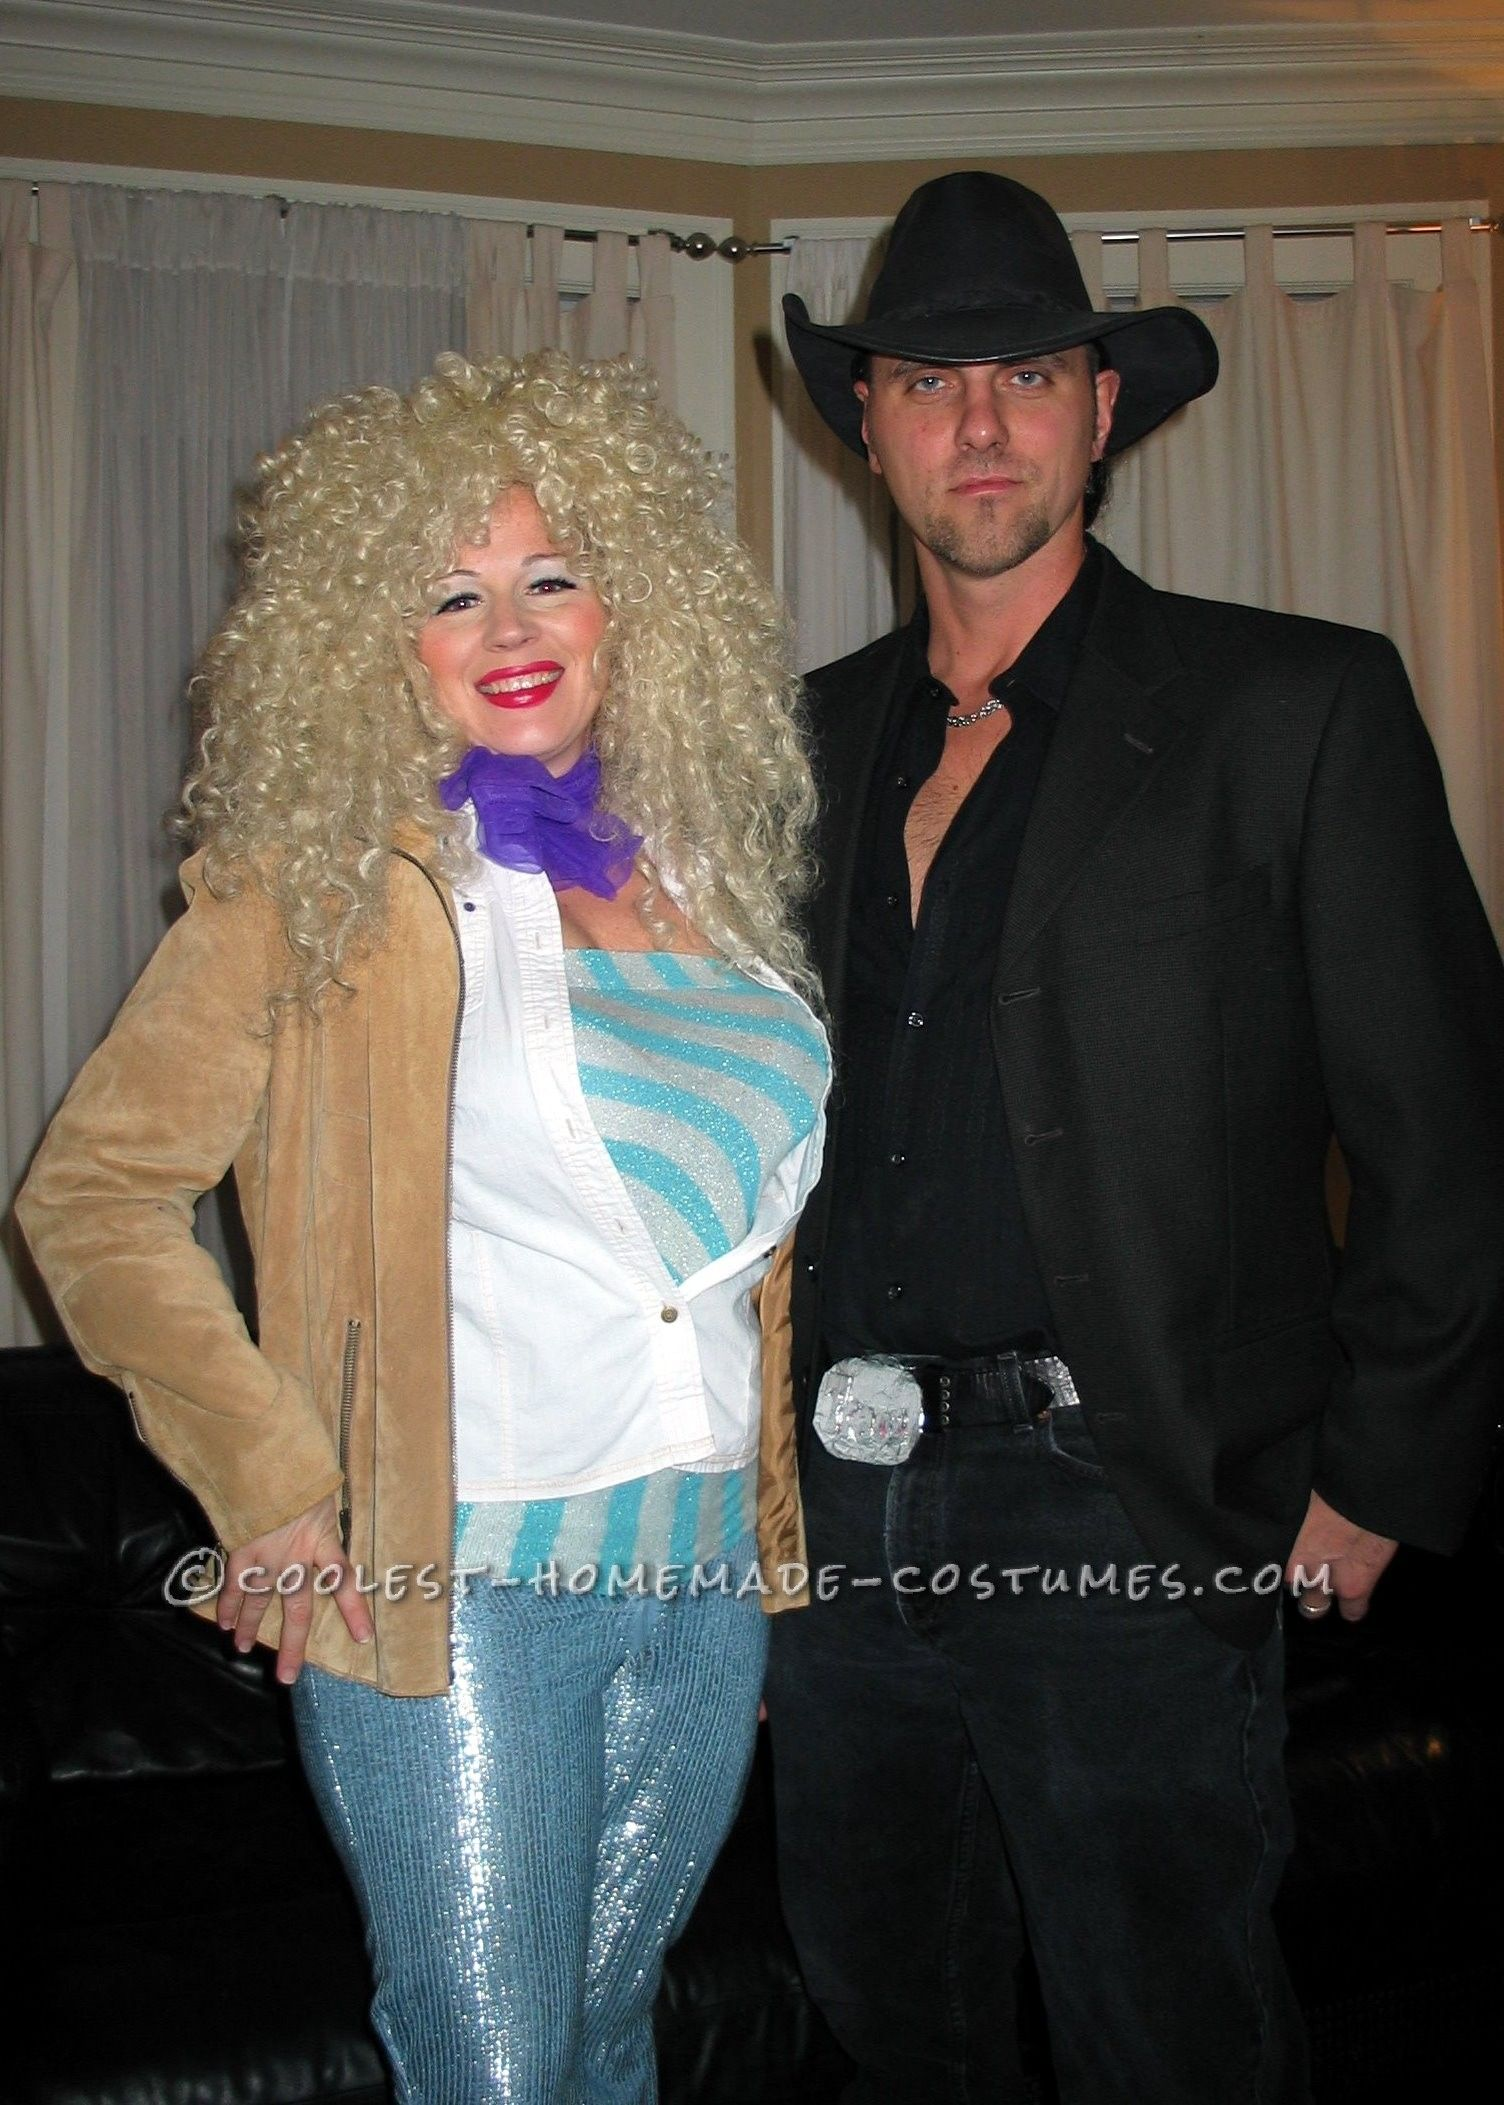 SaveEnlarge · Cowboys And Angels Halloween Cute Country Couple Costume  sc 1 st  Meningrey & Country Halloween Costume Ideas - Meningrey